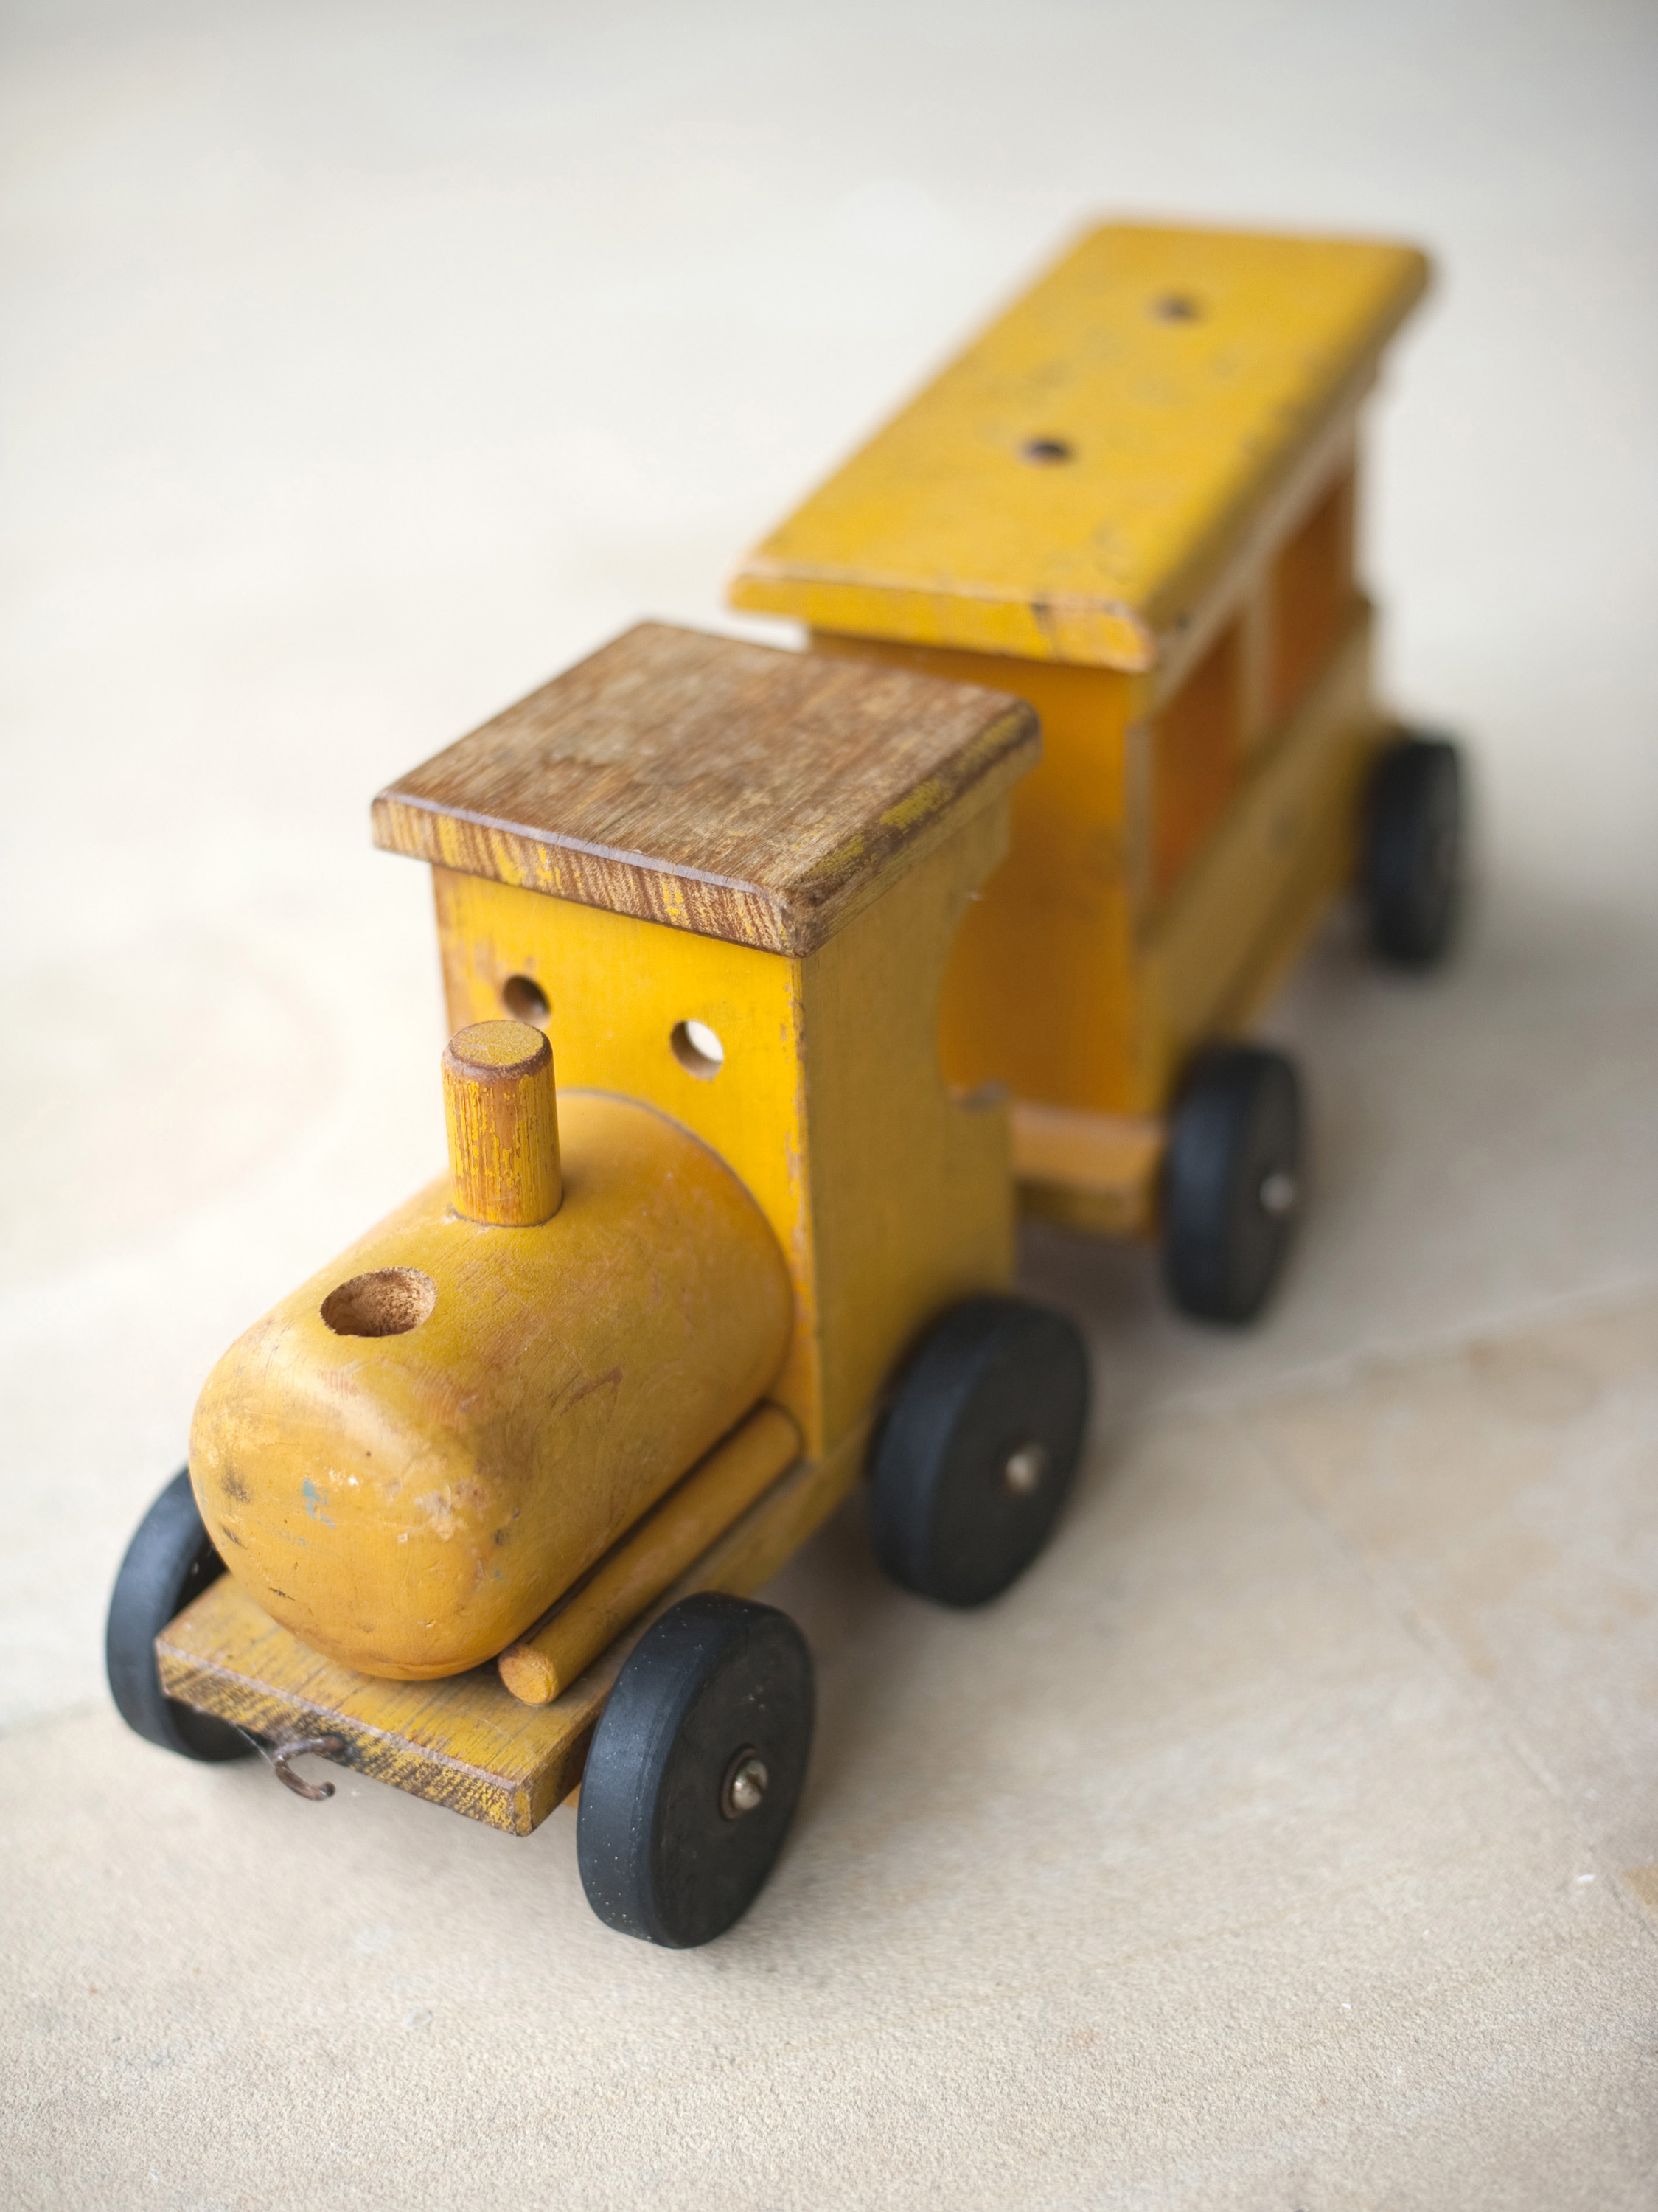 Close up shot of toy wooden train in yellow color being on white surface.